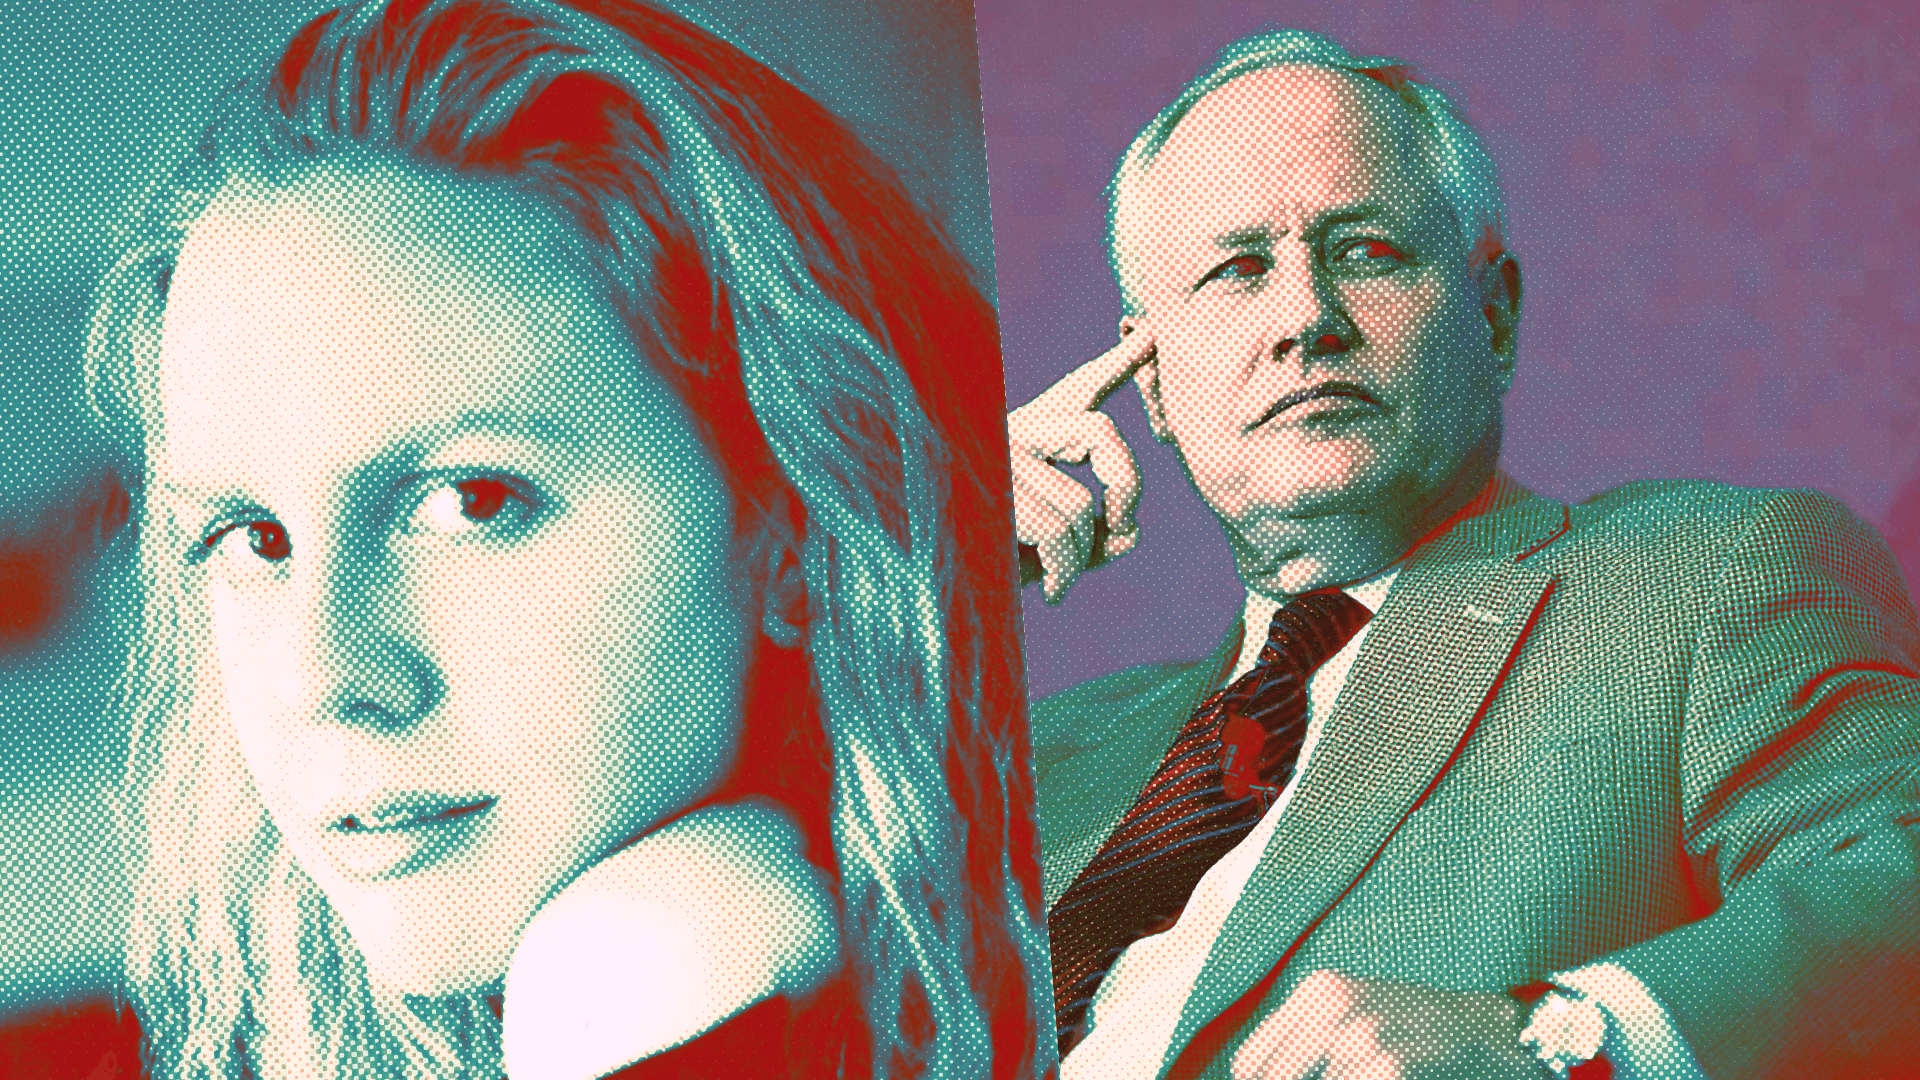 Molly Jong-Fast and Bill Kristol